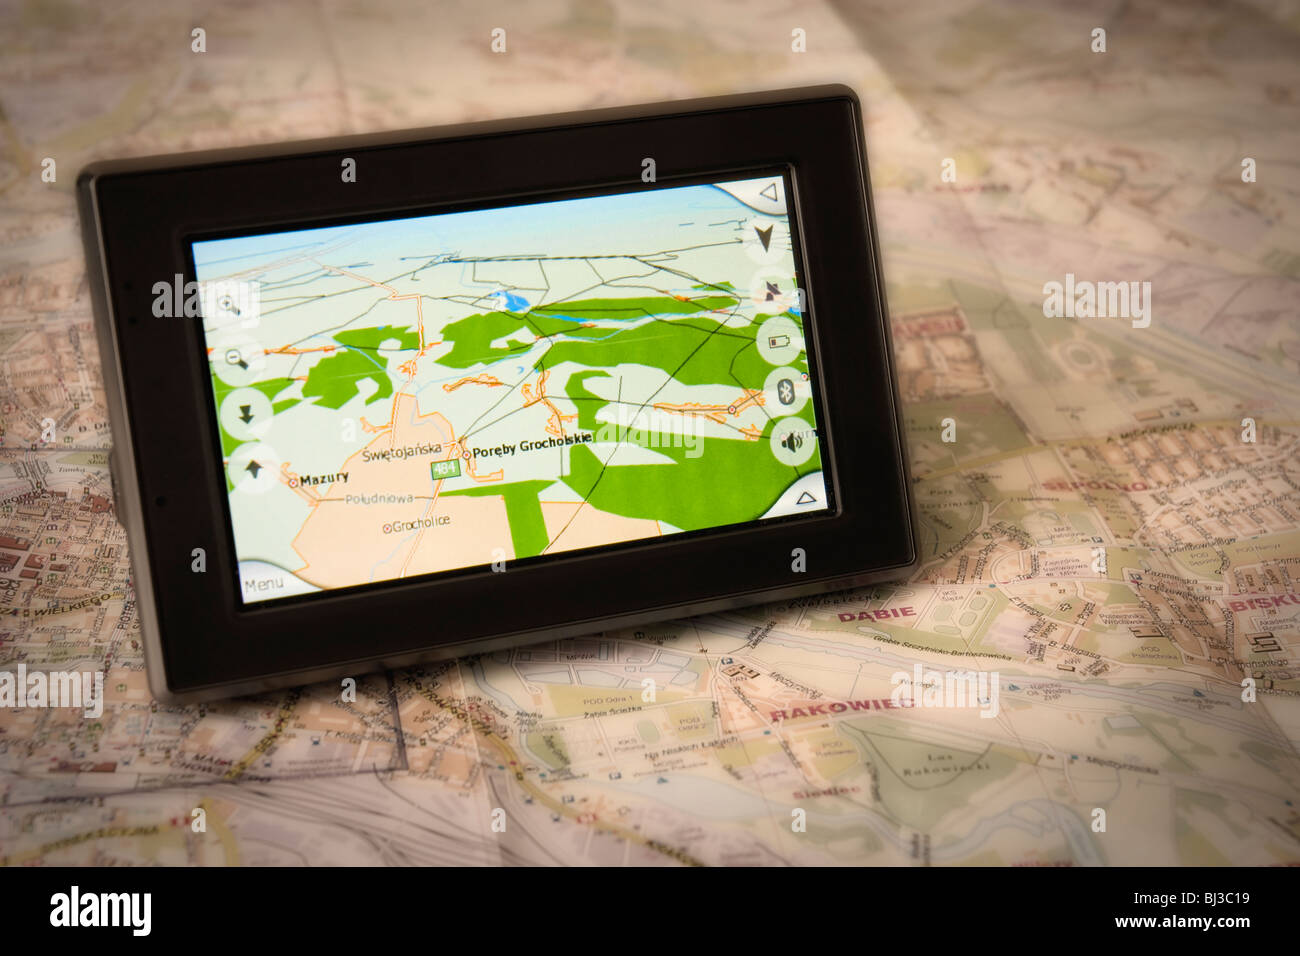 Portable GPS for a car sitting on a map - Stock Image